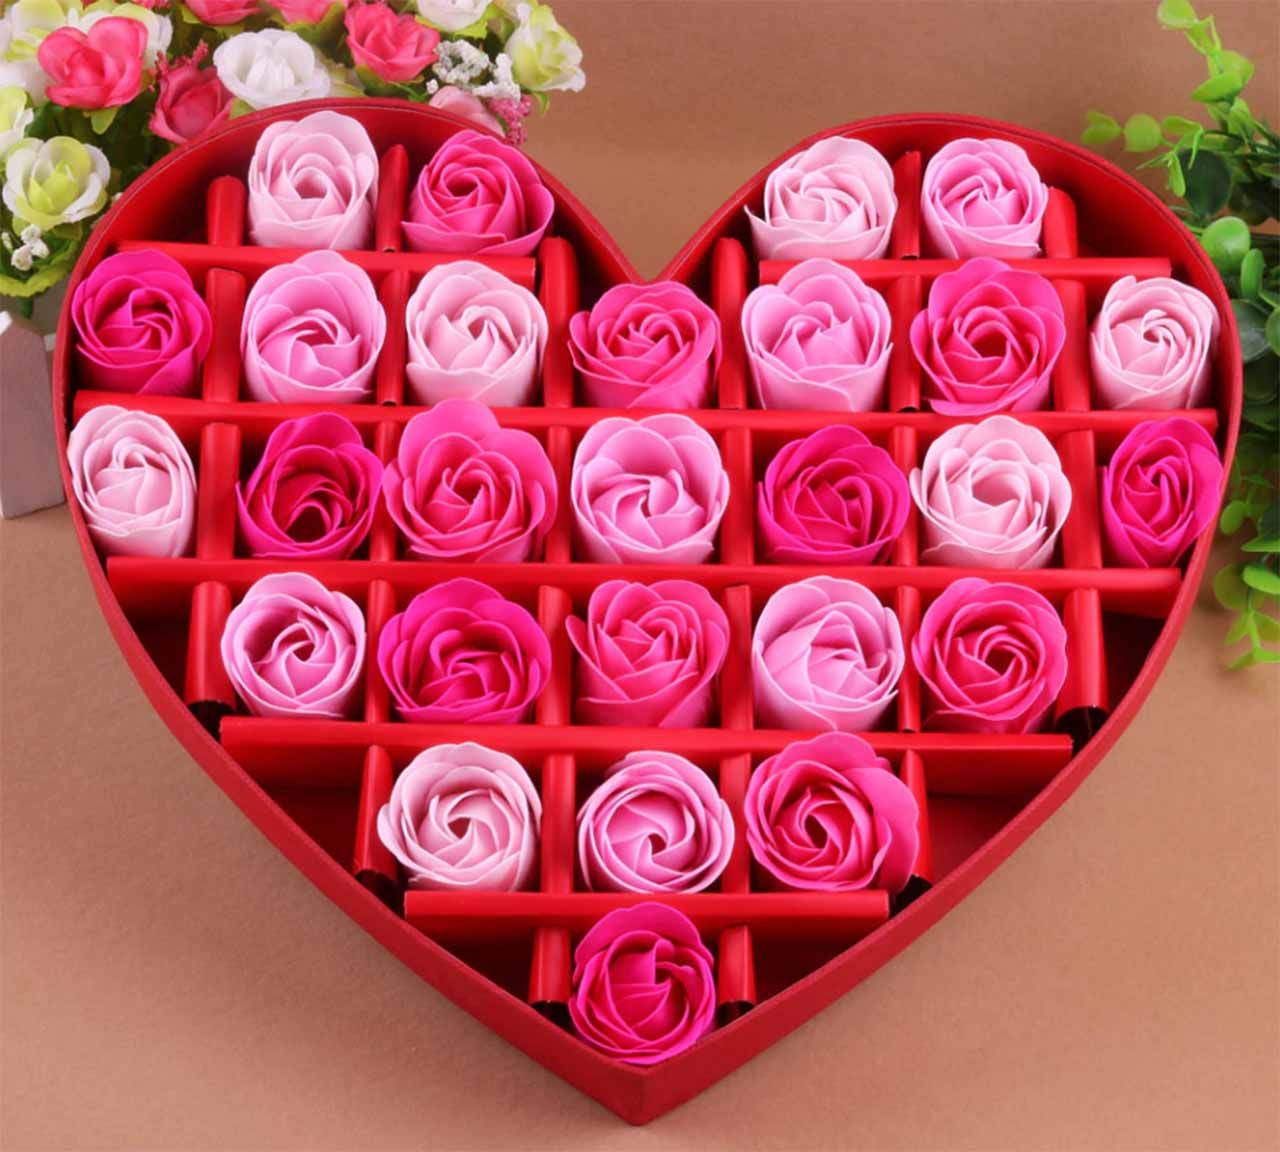 Romantic birthday gift ideas for girlfriend to impress her